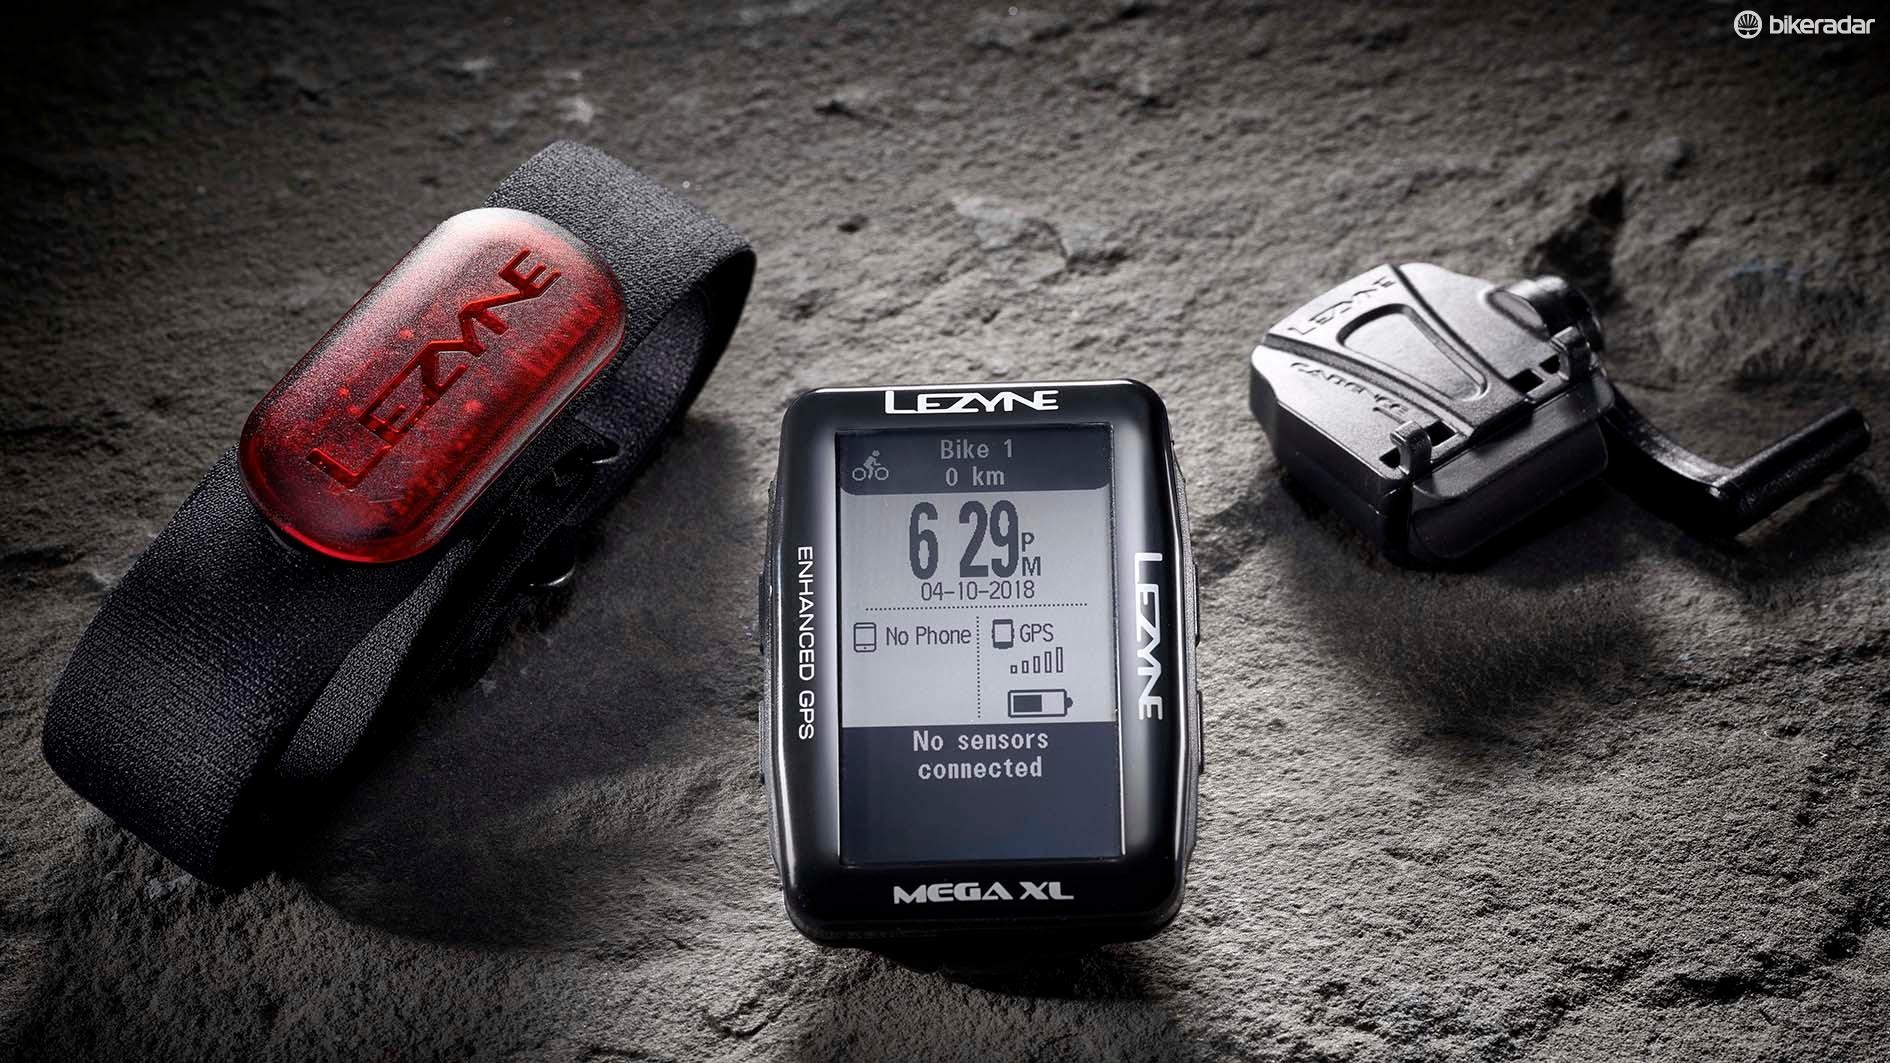 With more information on display and navigation, it's a bike geek's dream